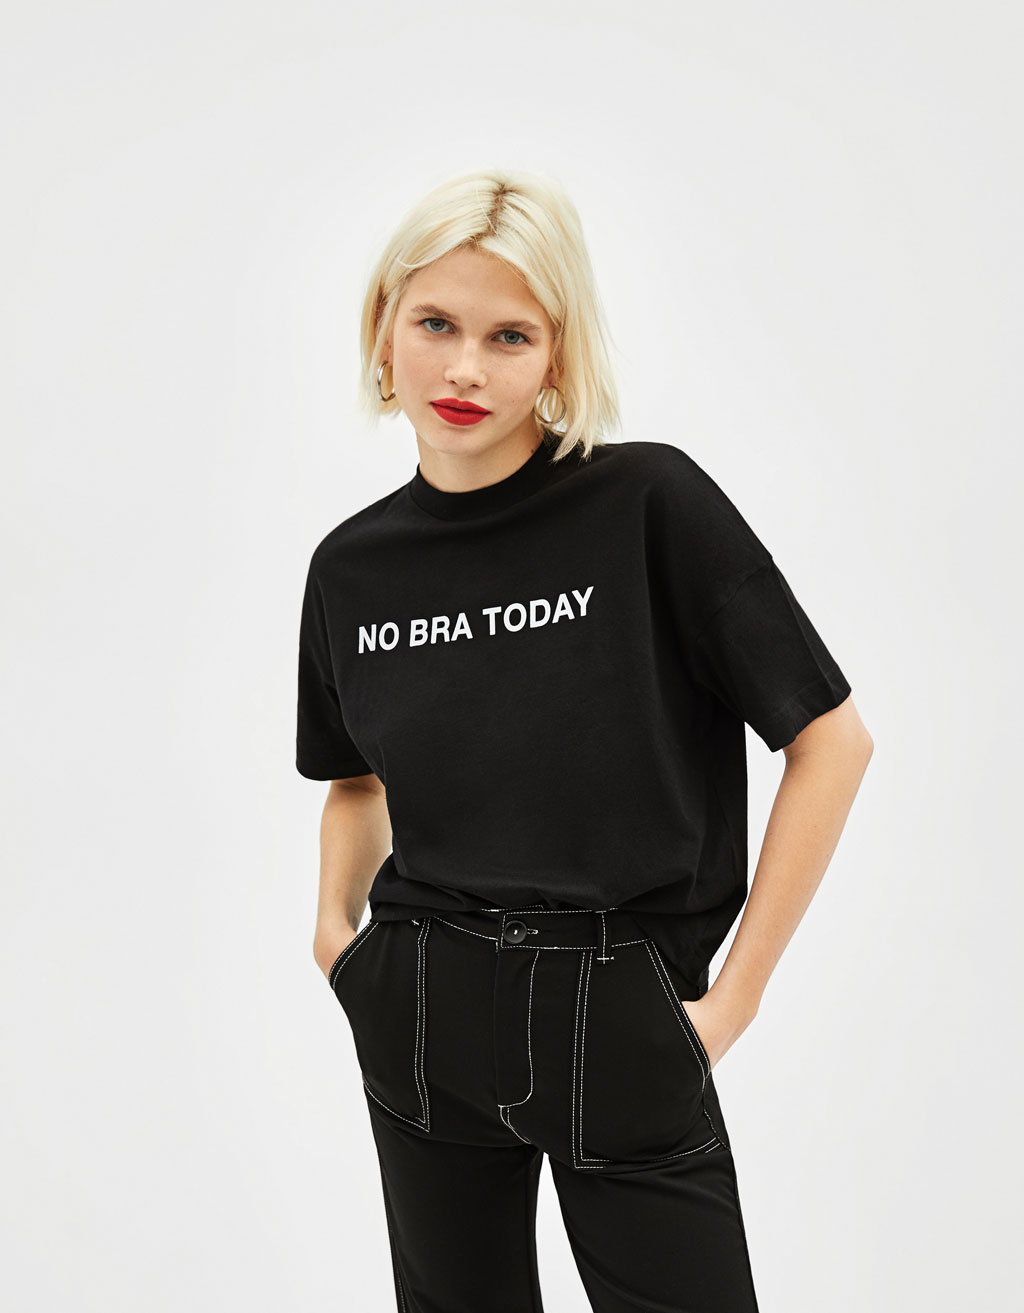 Samarreta 'No bra today'